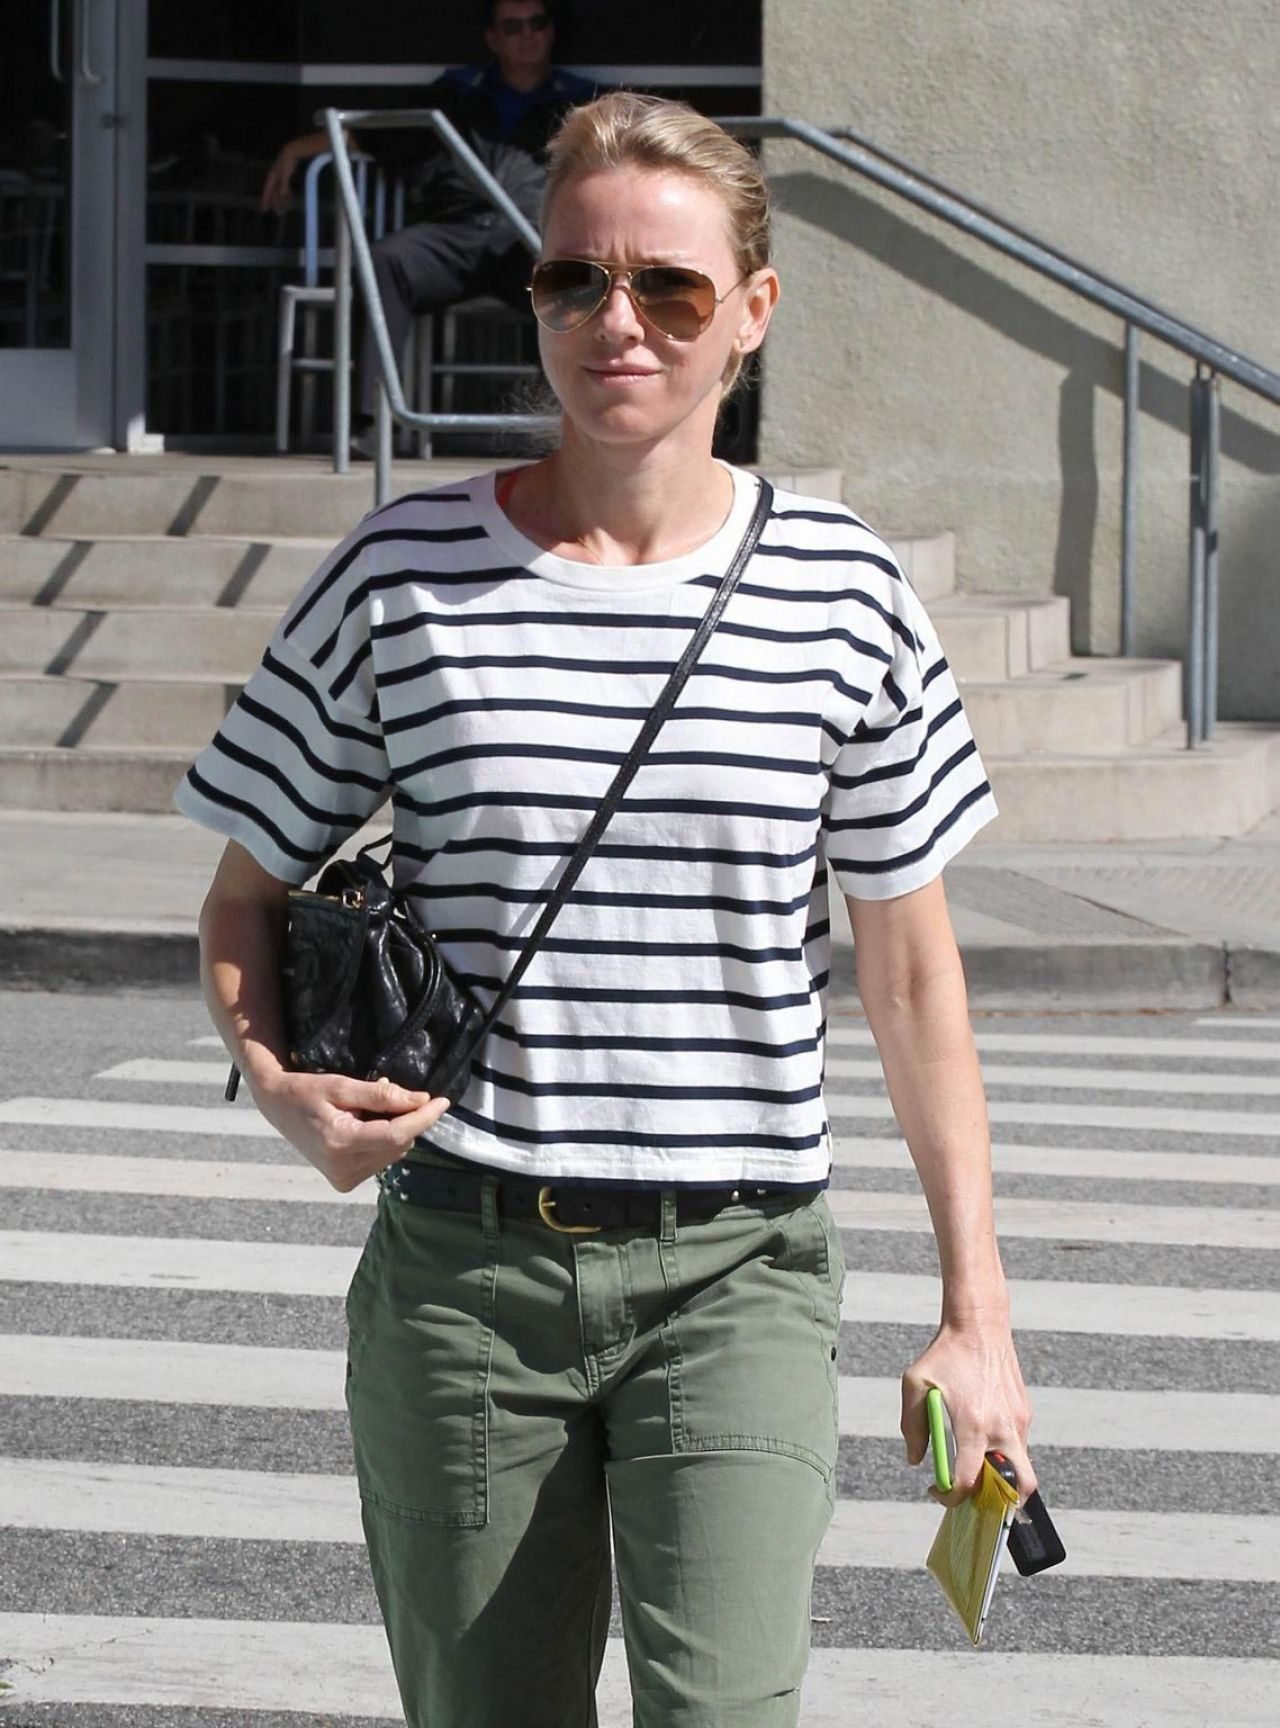 Naomi Watts Street Style - Santa Monica, California, February 2015